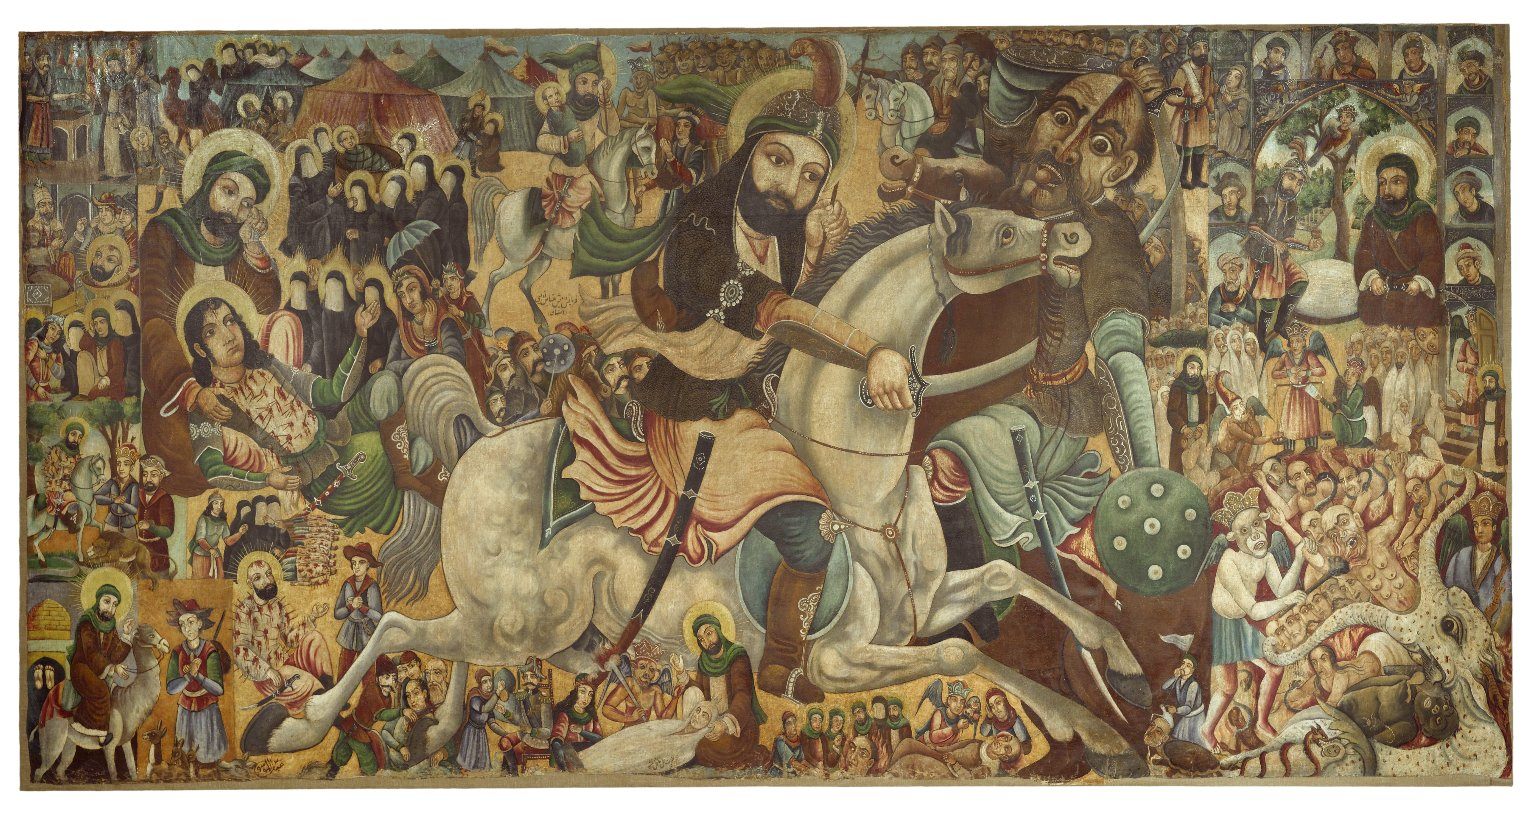 Brooklyn Museum - Battle of Karbala - Abbas Al-Musavi - overall